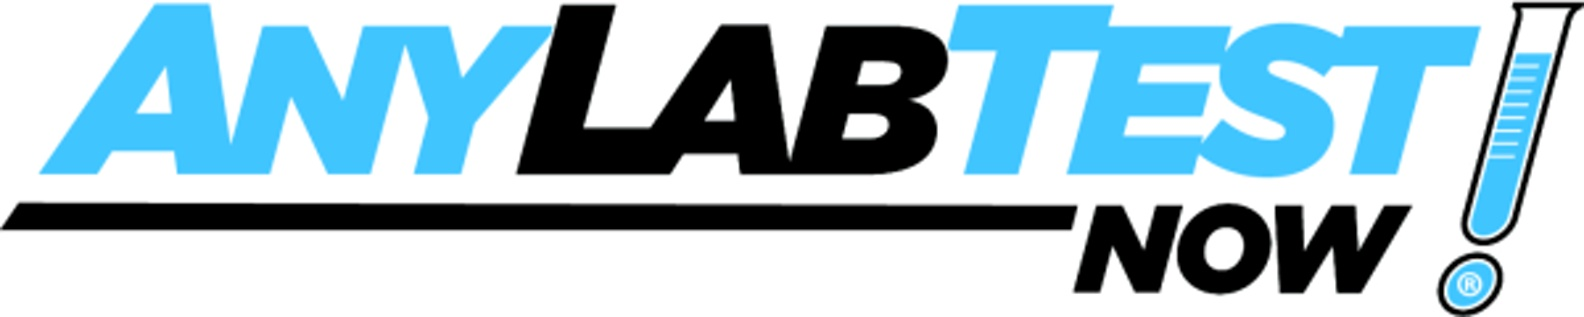 Any Lab Test Now - Altn-Frisco Logo